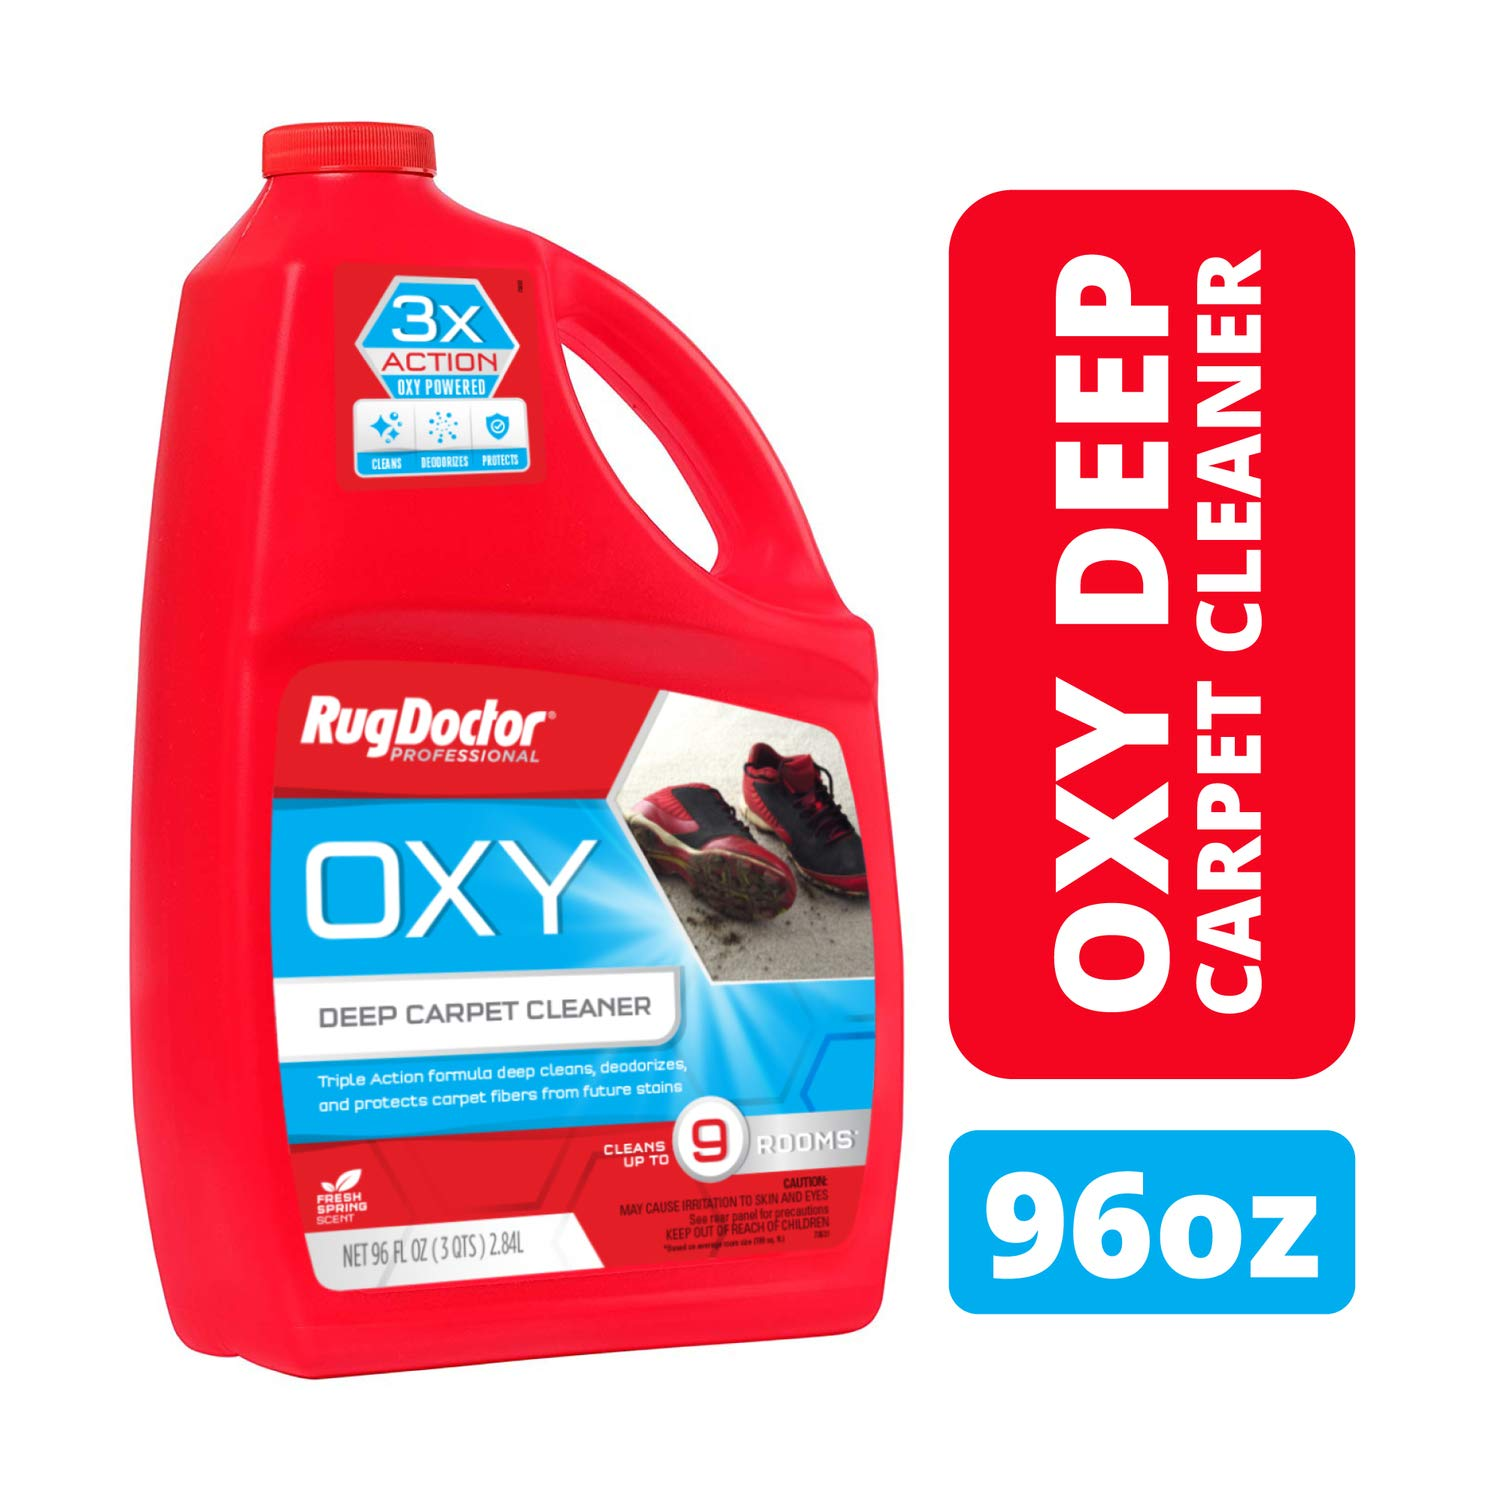 Rug Doctor Deep Cleaner Powerful, Professional-Grade, Deodorizes and Refreshes Carpet Cleaning Solution Triple Action Oxy 96 oz, 1